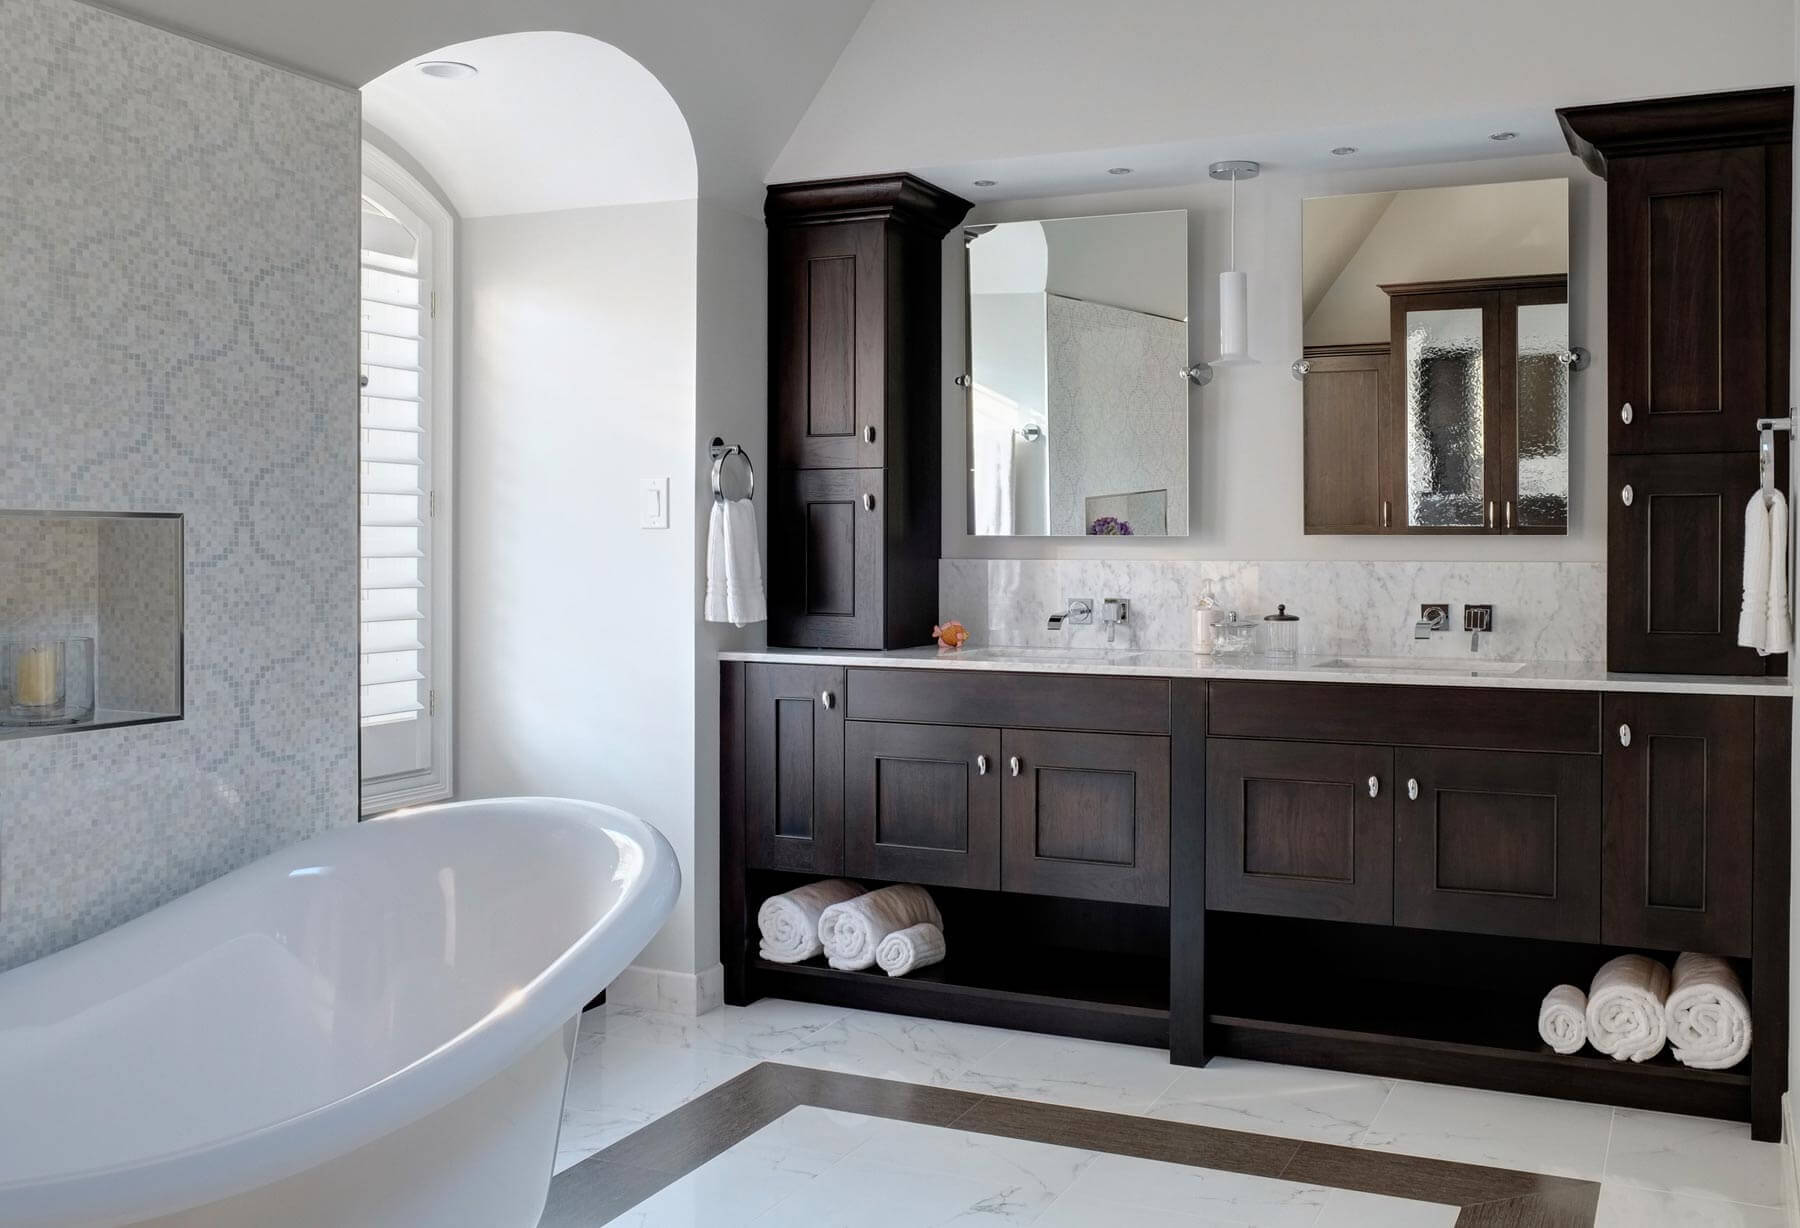 The contrast between dark hickory cabinetry and bright marble defines this large, open bathroom. Mosaic tile wall stands next to white pedestal tub, while dual vanity with tilting mirrors floats above marble backsplash.